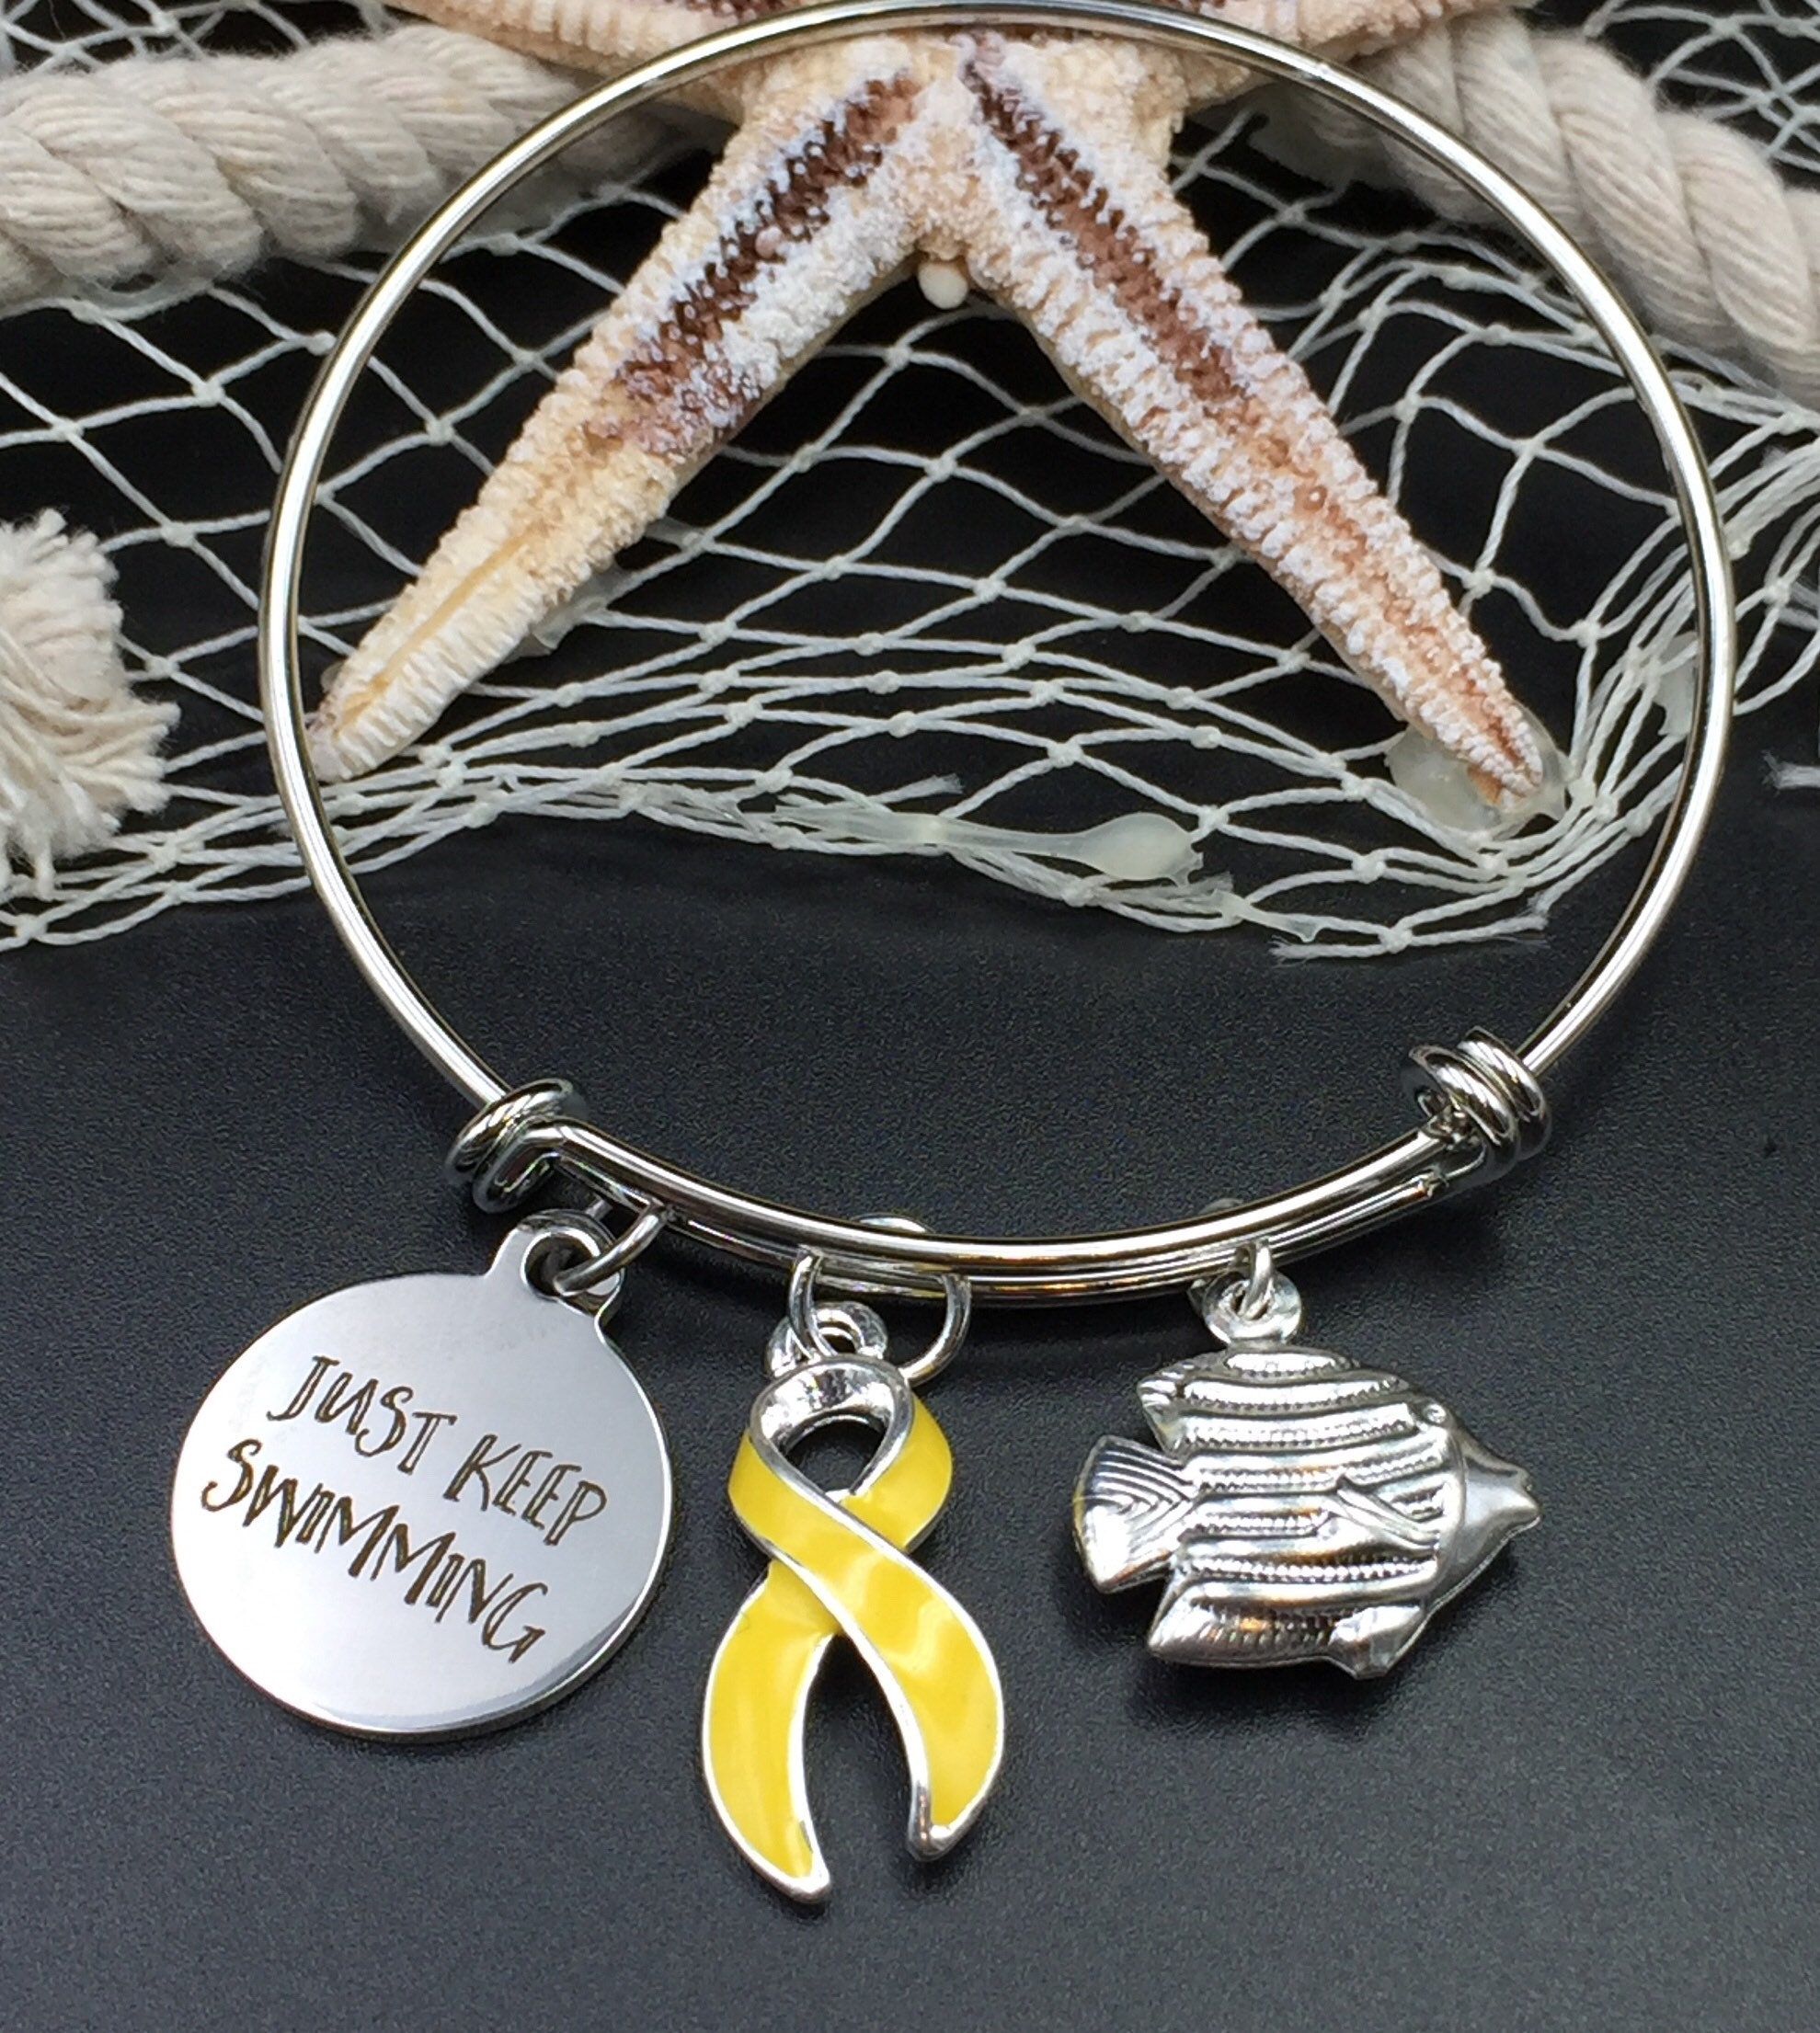 ribbon spina bifida cancer liver survivor charm yellow osteosarcoma pin adenosarcoma bladder bracelet endometriosis